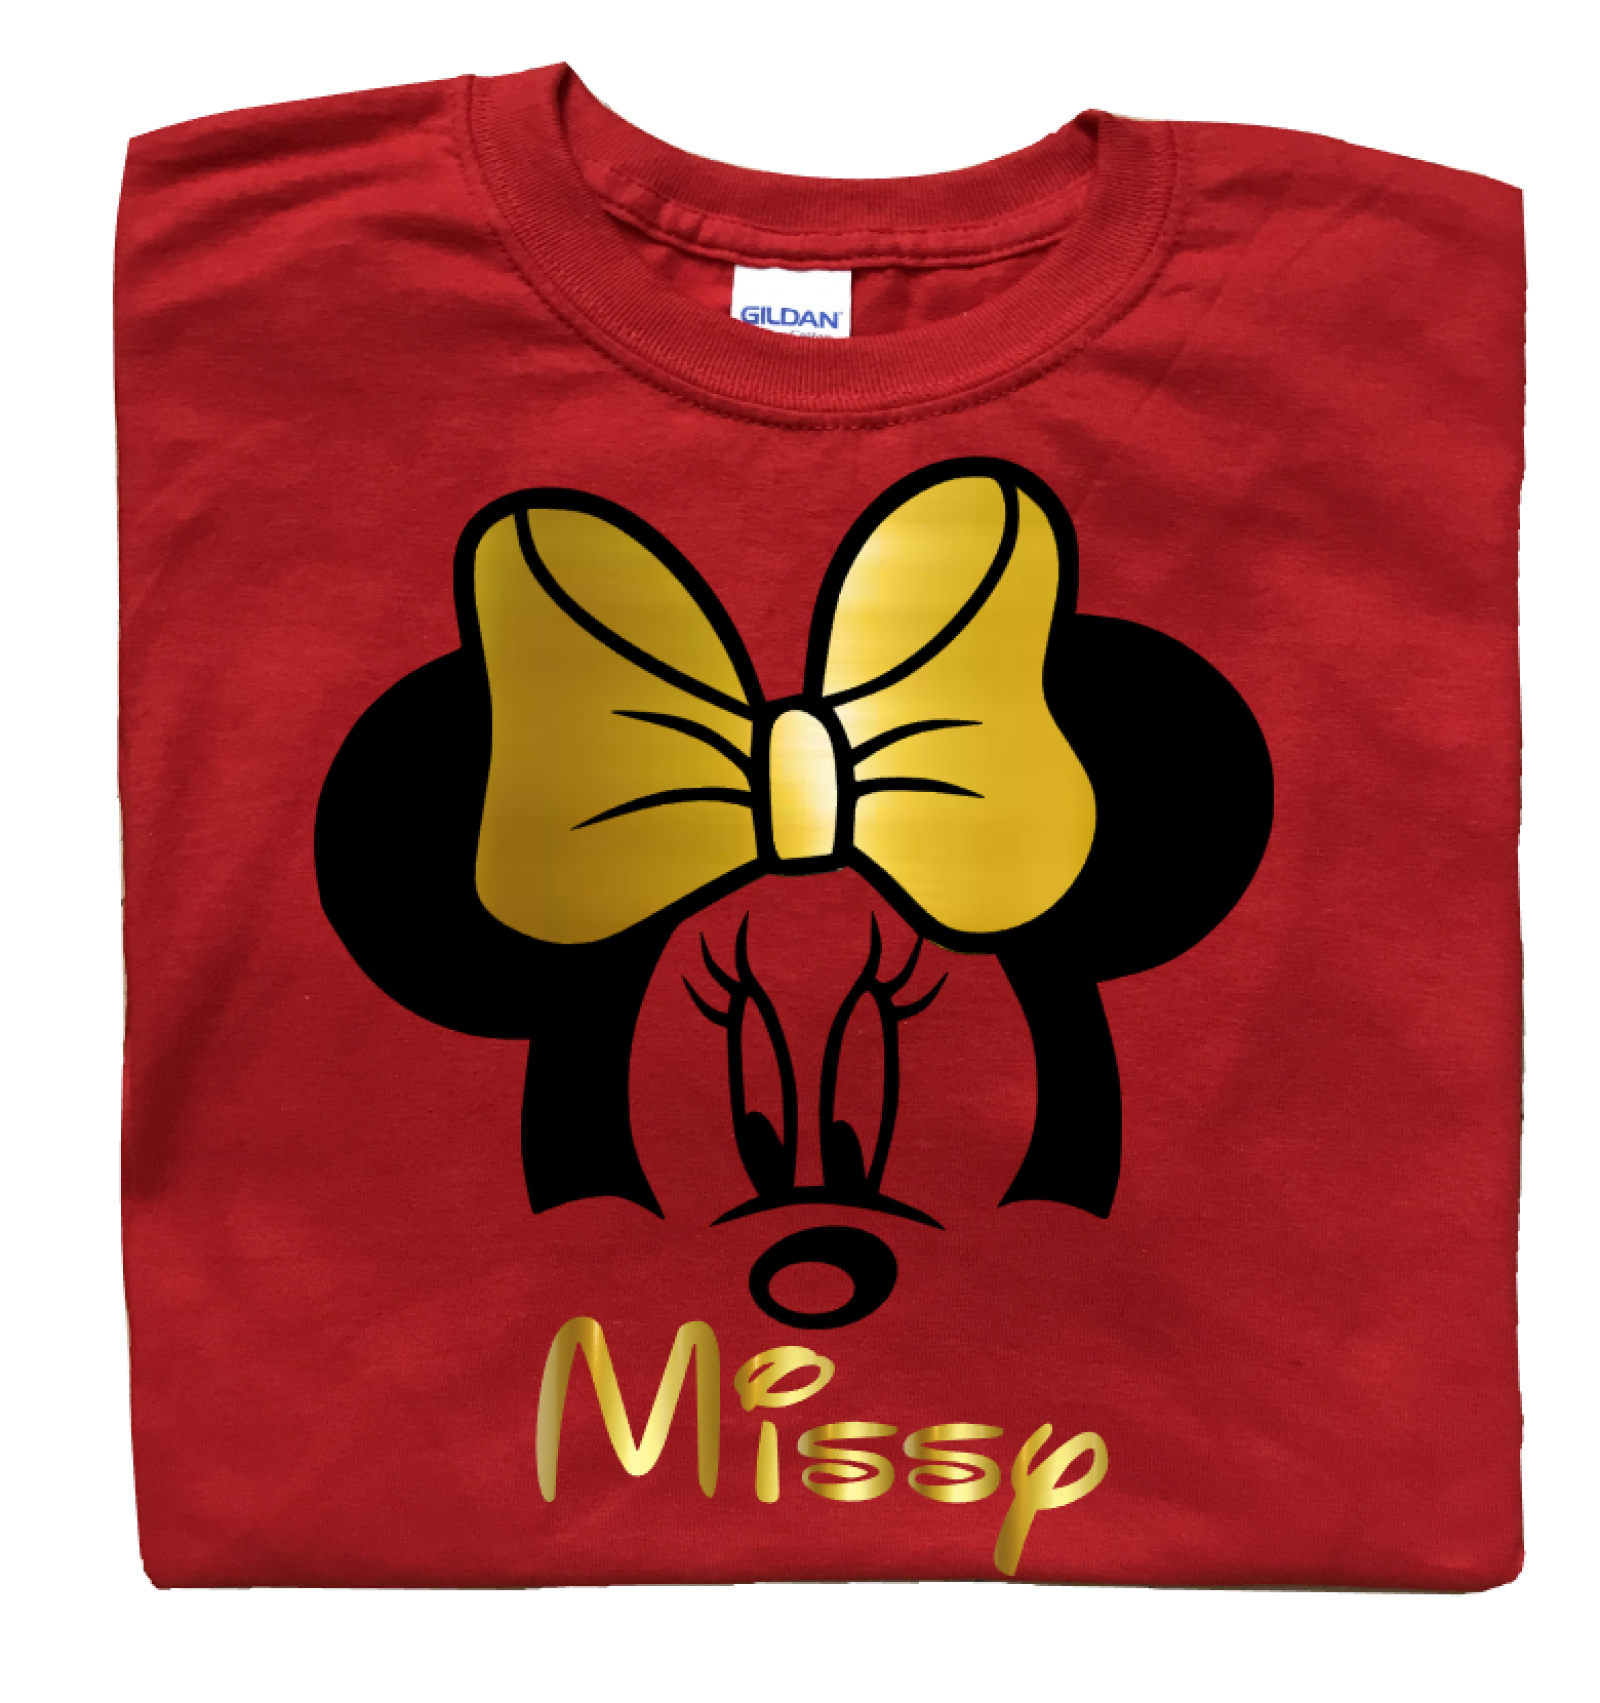 Disney custom family mick minnie design family vacation for Custom t shirts family vacation